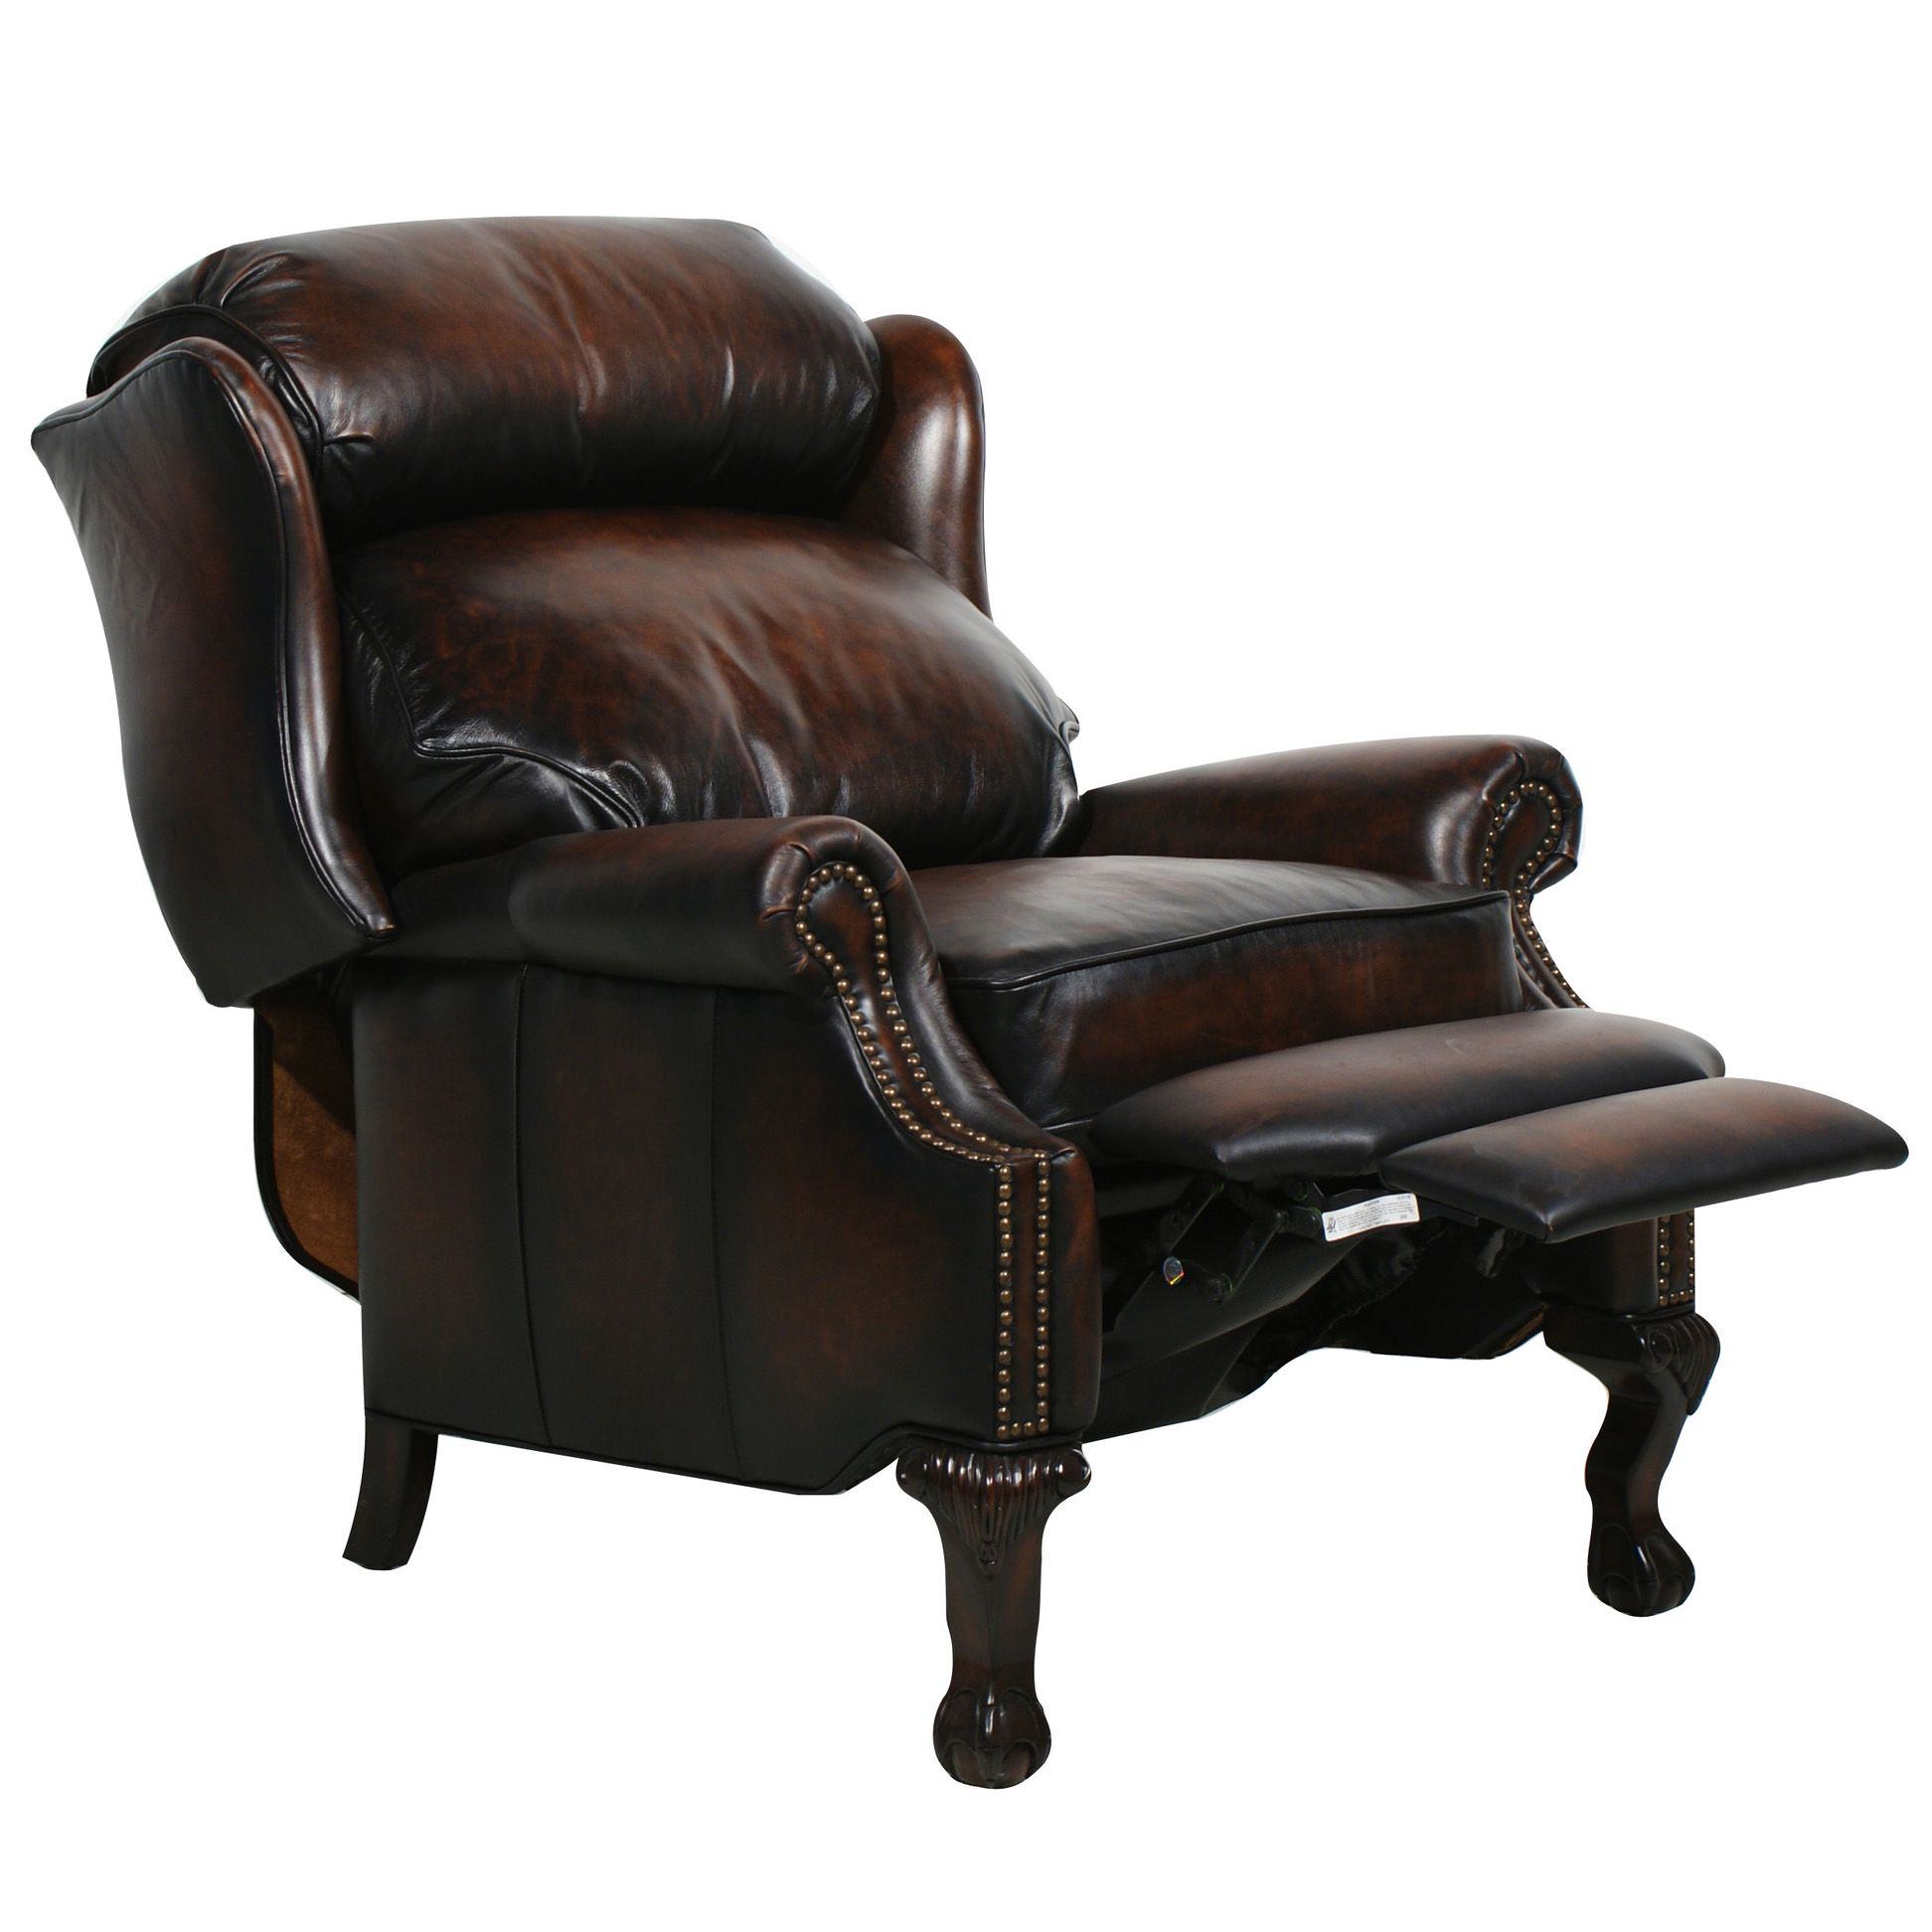 Terrific Image Result For Designer Leather Recliner Chairs Onthecornerstone Fun Painted Chair Ideas Images Onthecornerstoneorg